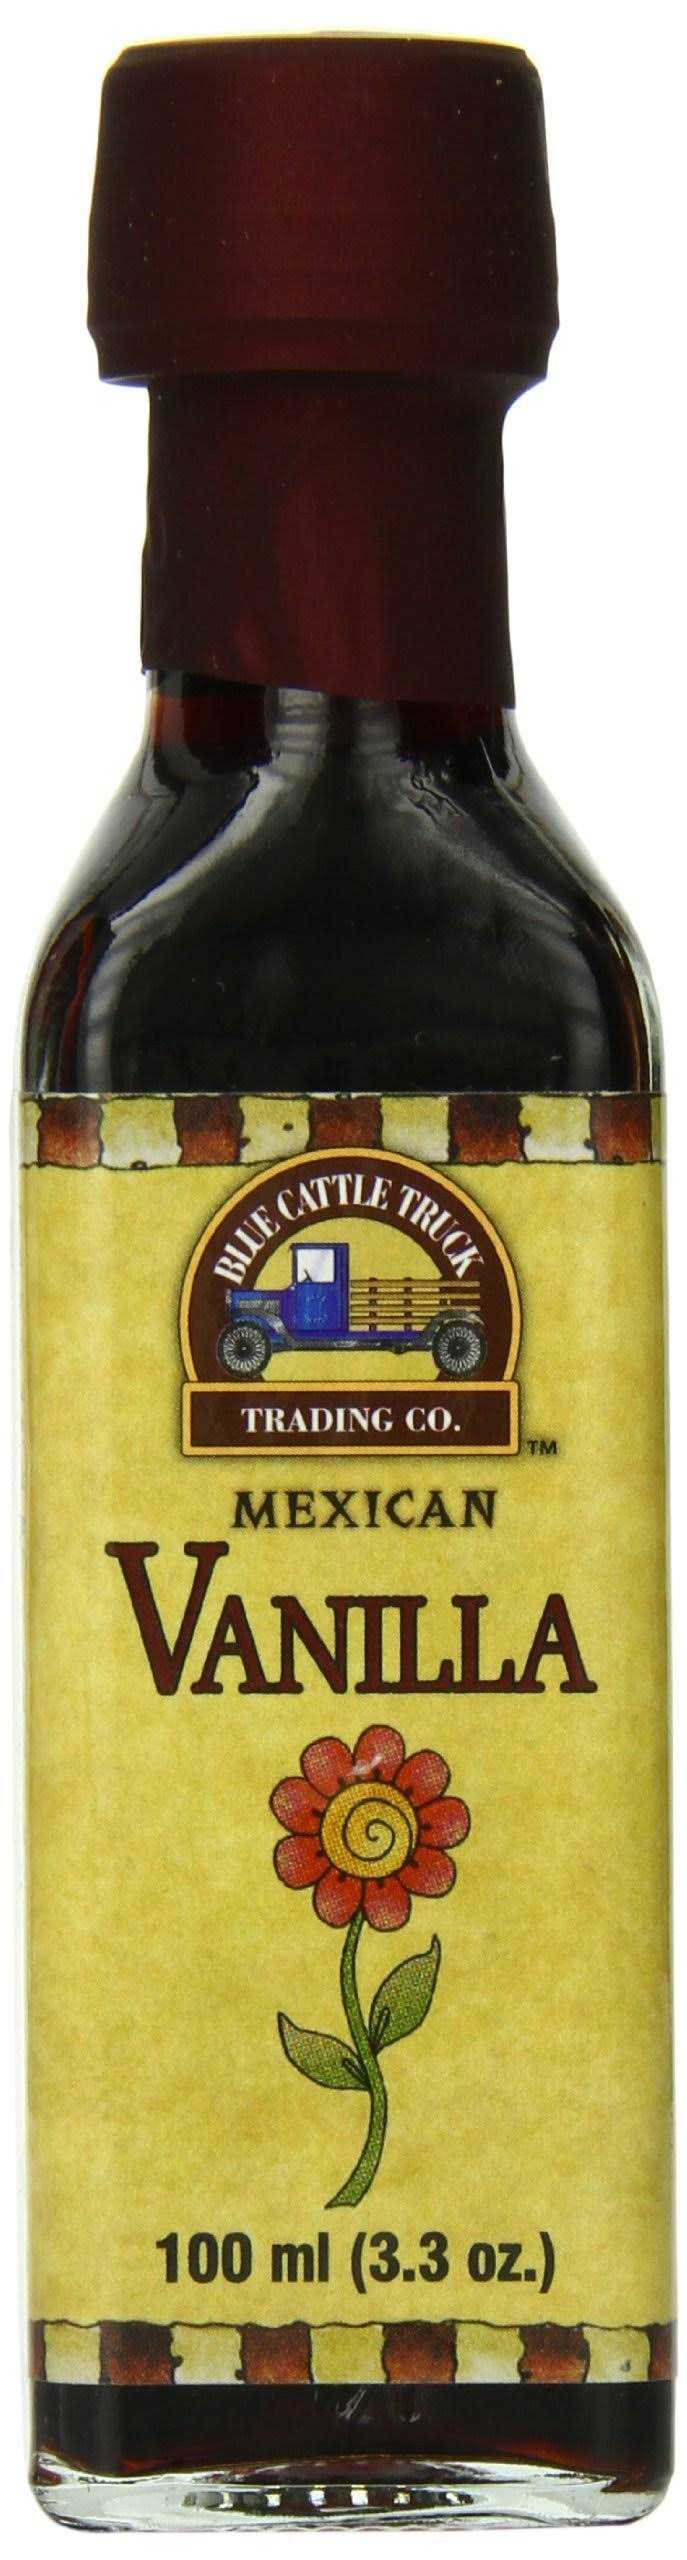 Blue Cattle Truck Mexican Vanilla - 3.3oz